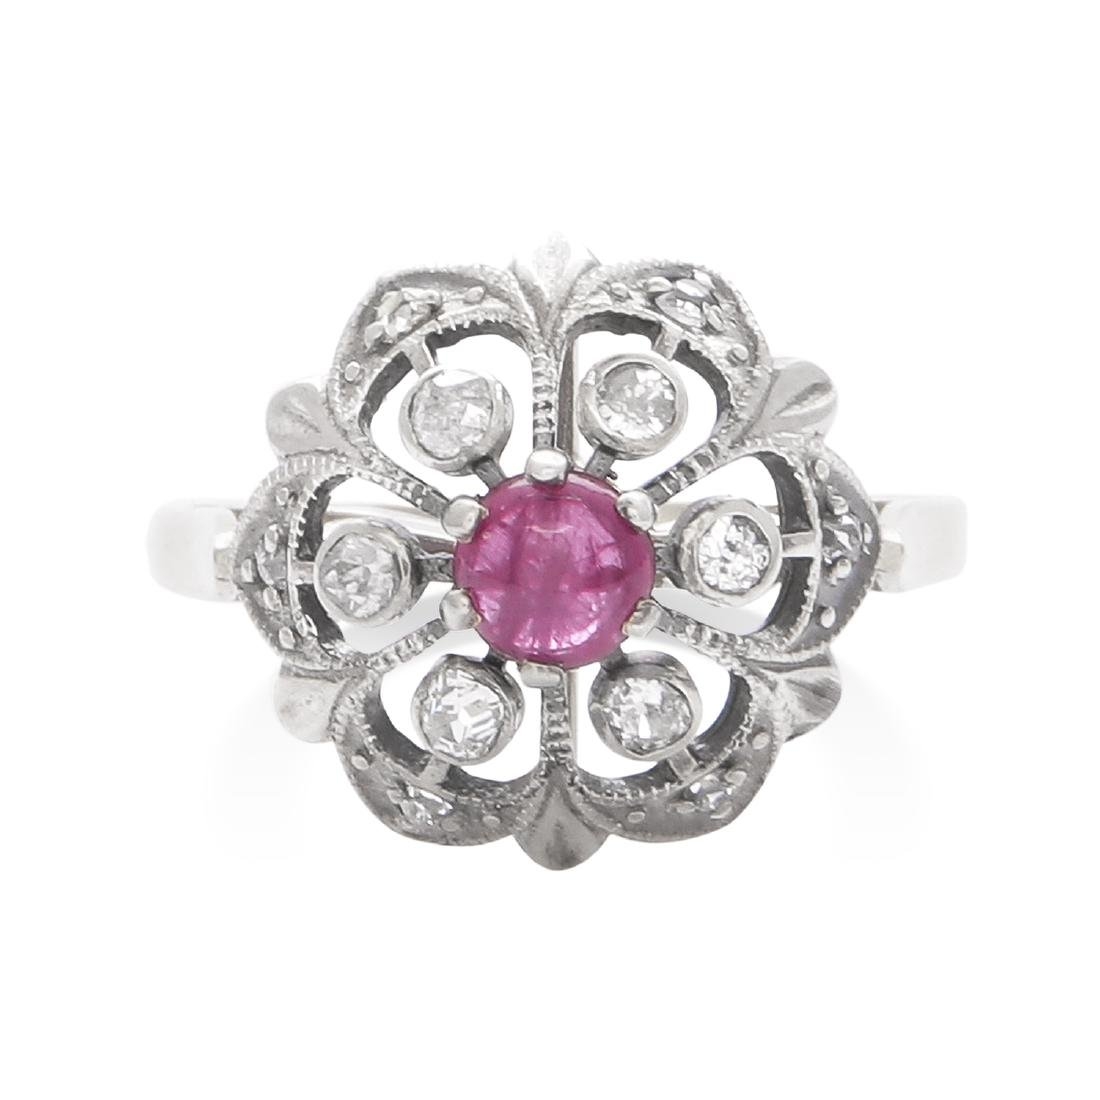 A RUBY AND DIAMOND DRESS RING in yellow gold and